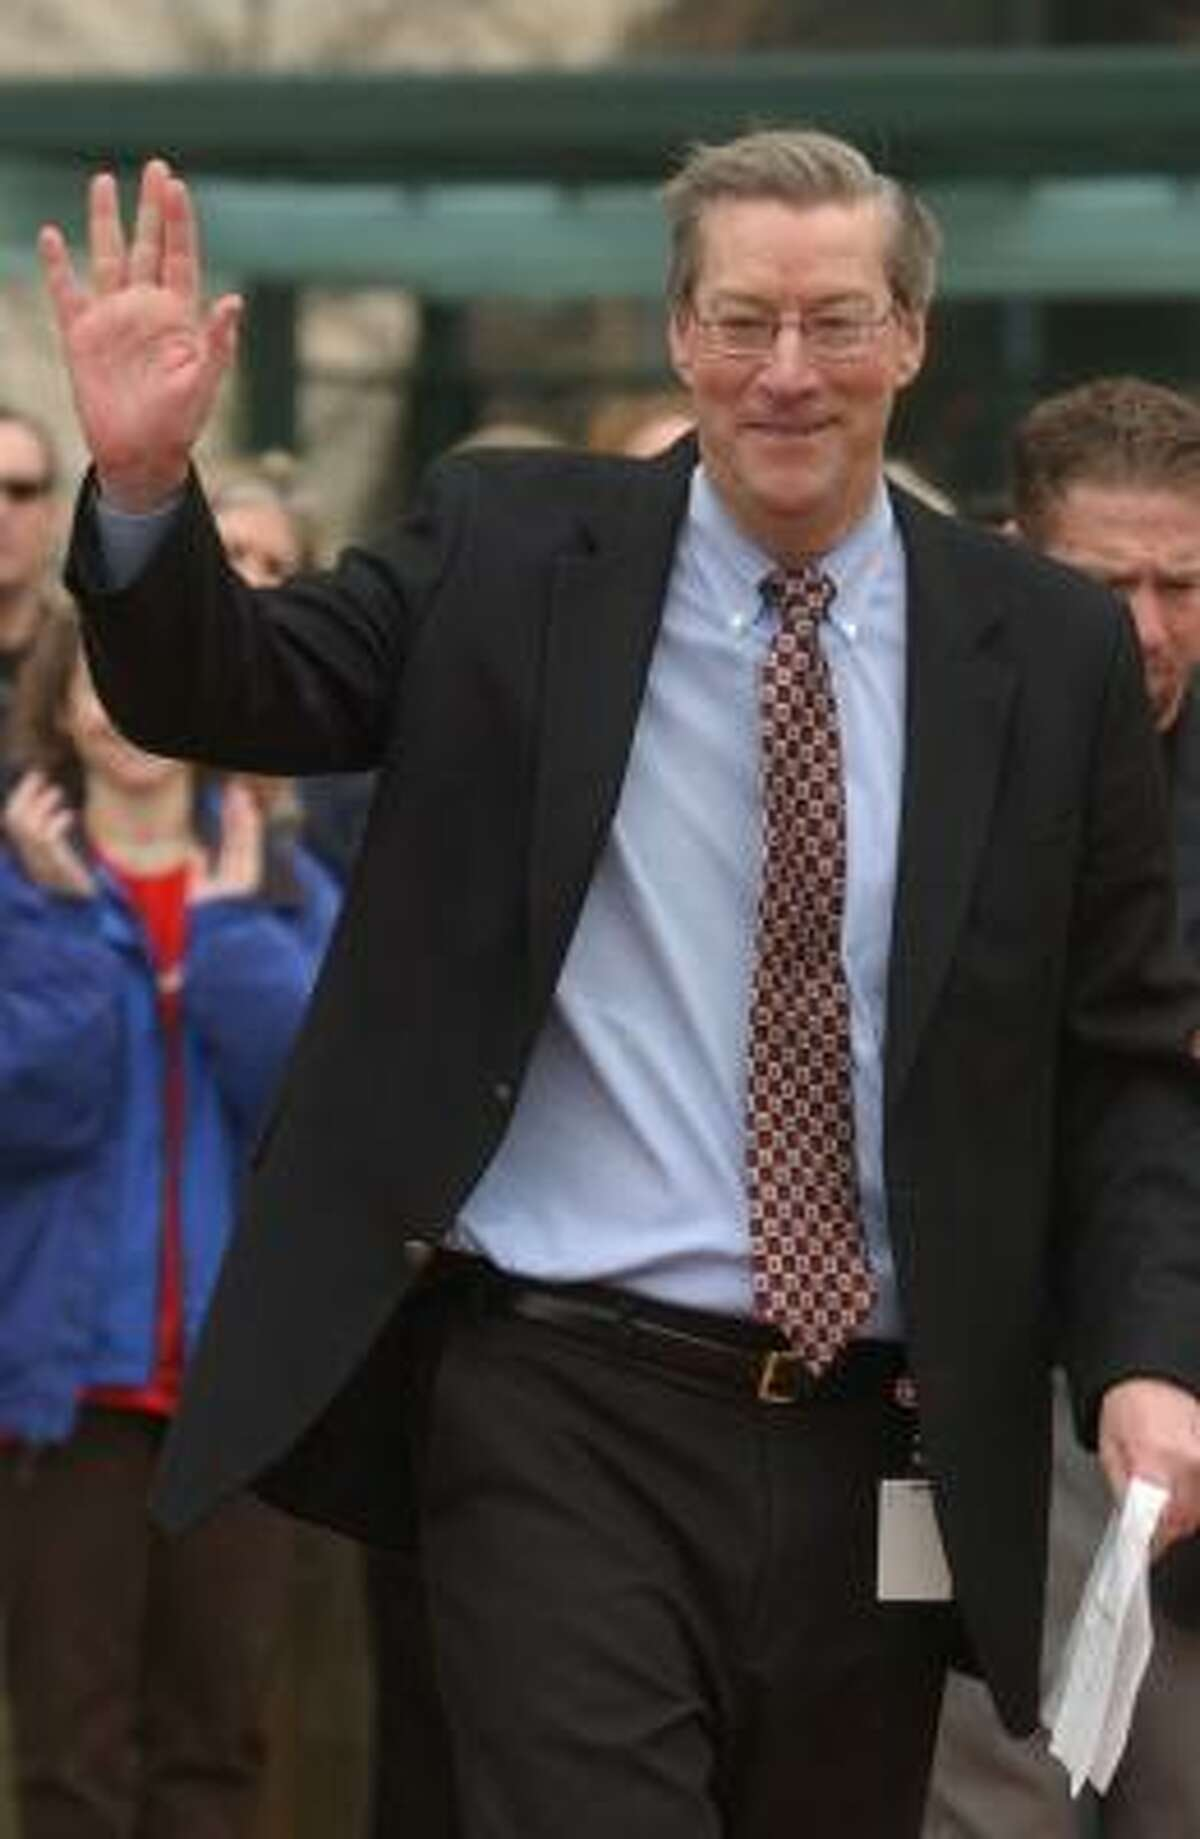 Dave Lesar, the chairman and CEO of Halliburton, attends the dedication of Halliburton Plaza at Minute Maid Park in 2003.